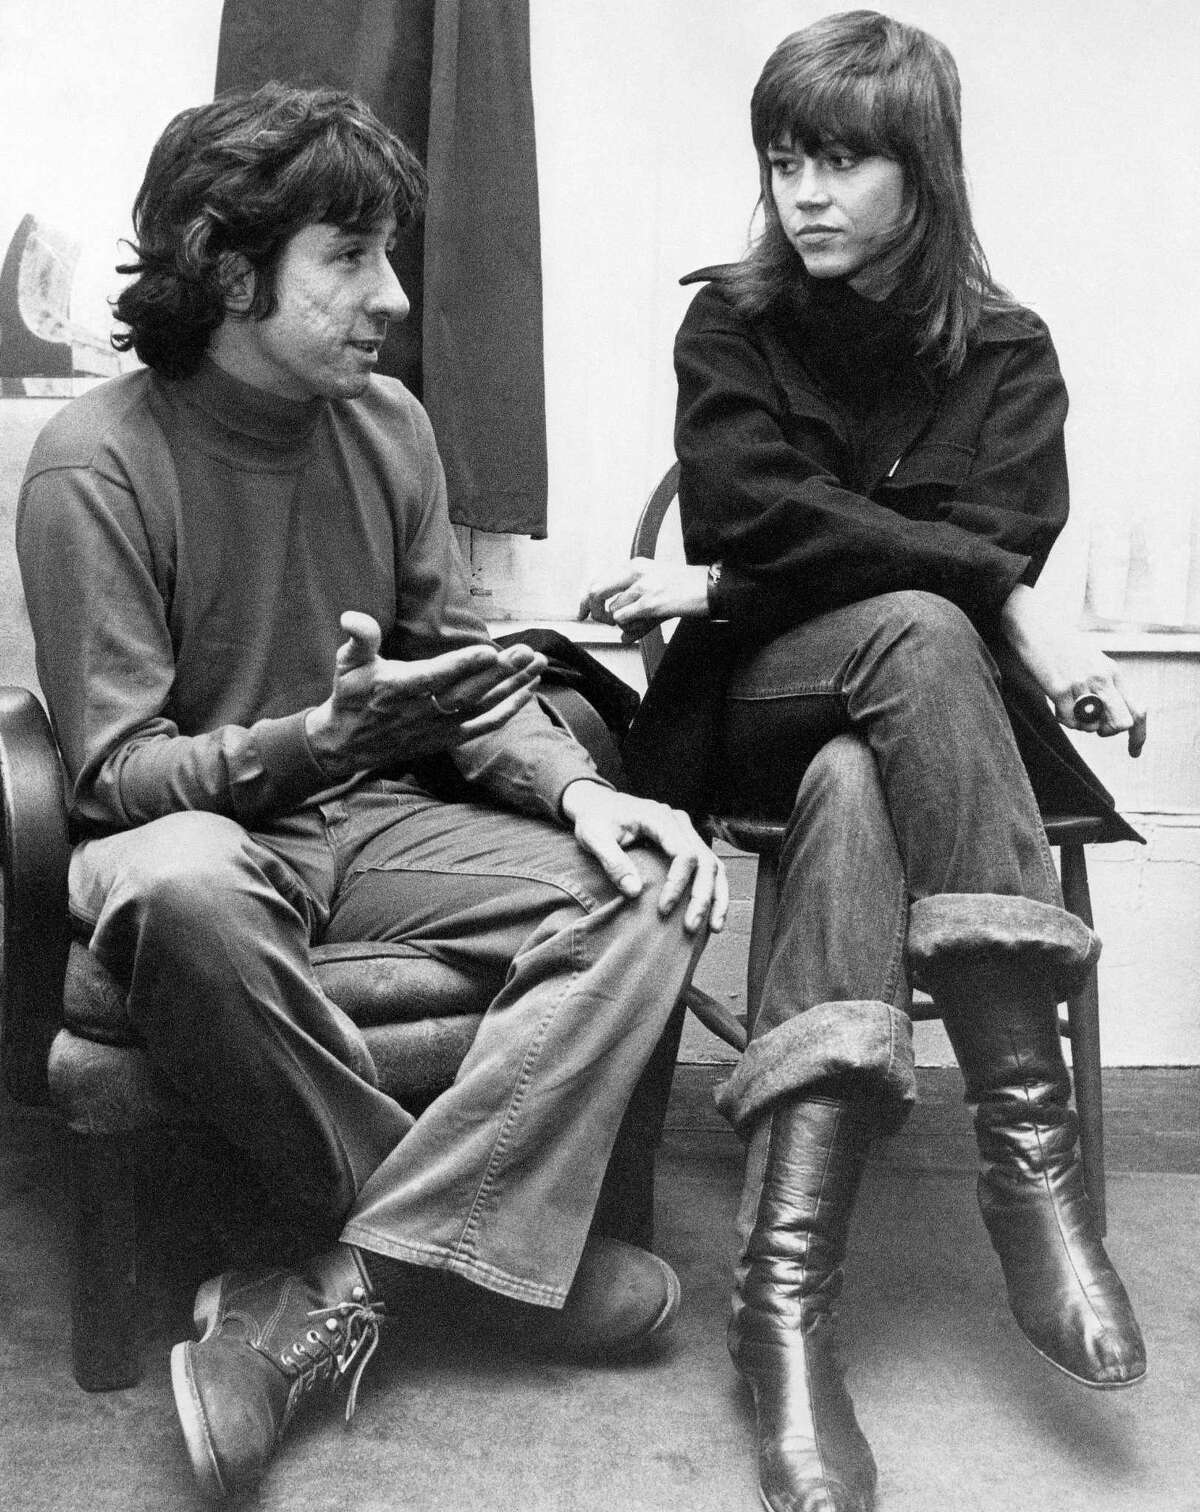 In this Dec. 26, 1972 photo, actress Jane Fonda, right, and Tom Hayden, one of the founders of SDS, talk at the home of a friend in London, after their arrival from Paris. Hayden, the famed 1960s anti-war activist who moved beyond his notoriety as a Chicago 7 defendant to become a California legislator, author and lecturer, has died at age 76. His wife, Barbara Williams, says Hayden died on Oct. 23, 2016, in Santa Monica of a long illness.